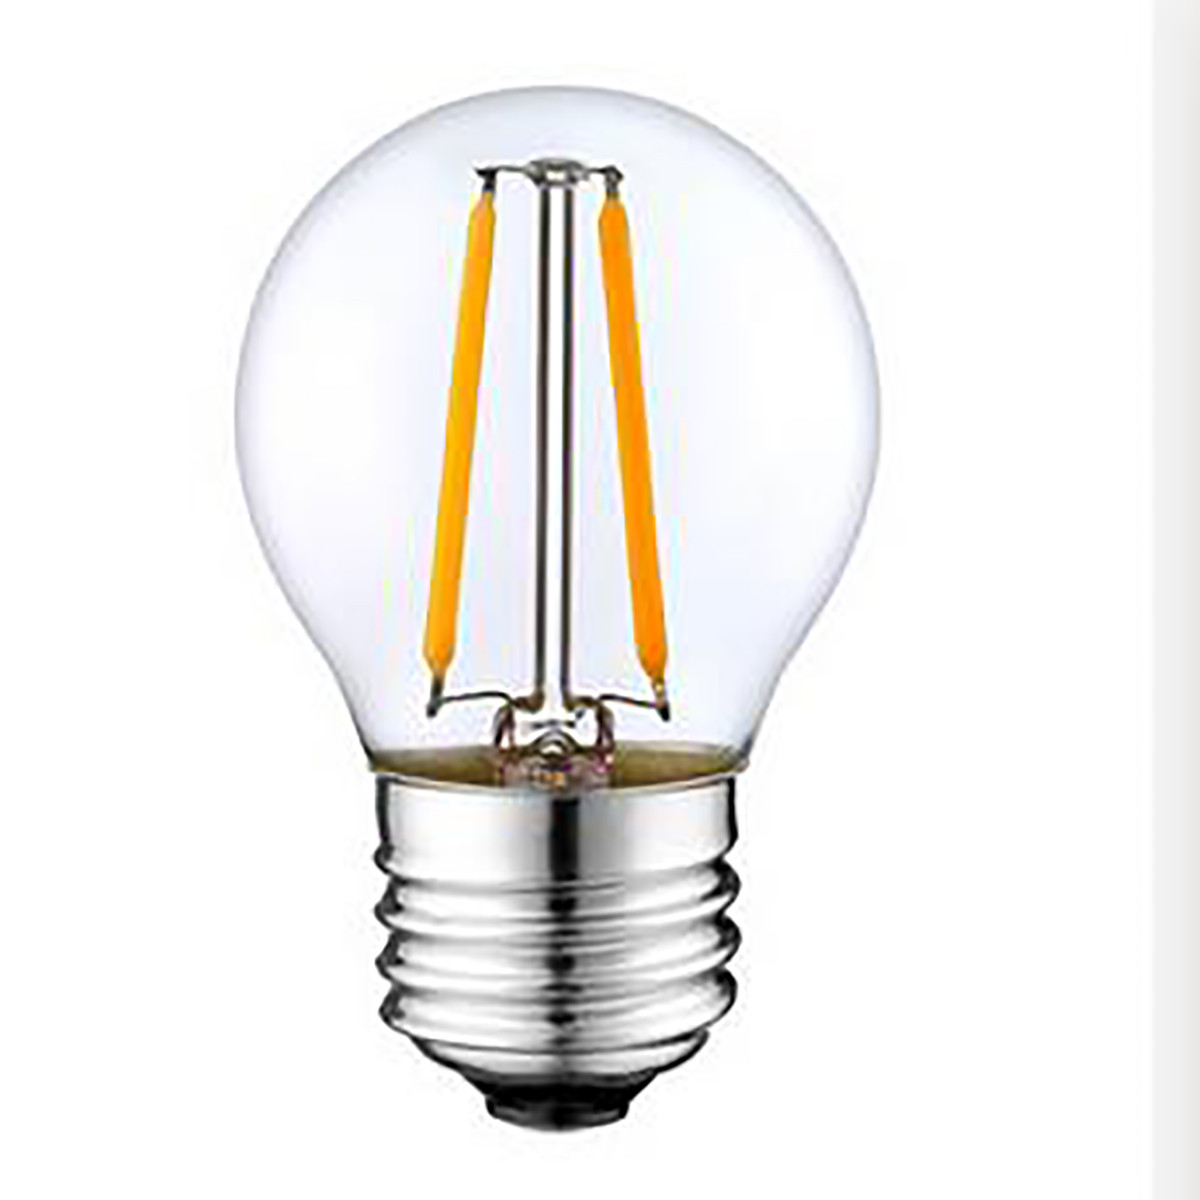 2W Filament LED Globe Light Bulb Light G45 Chandelier Bulb with E26 Base 20W Equivalent Halogen Replacement